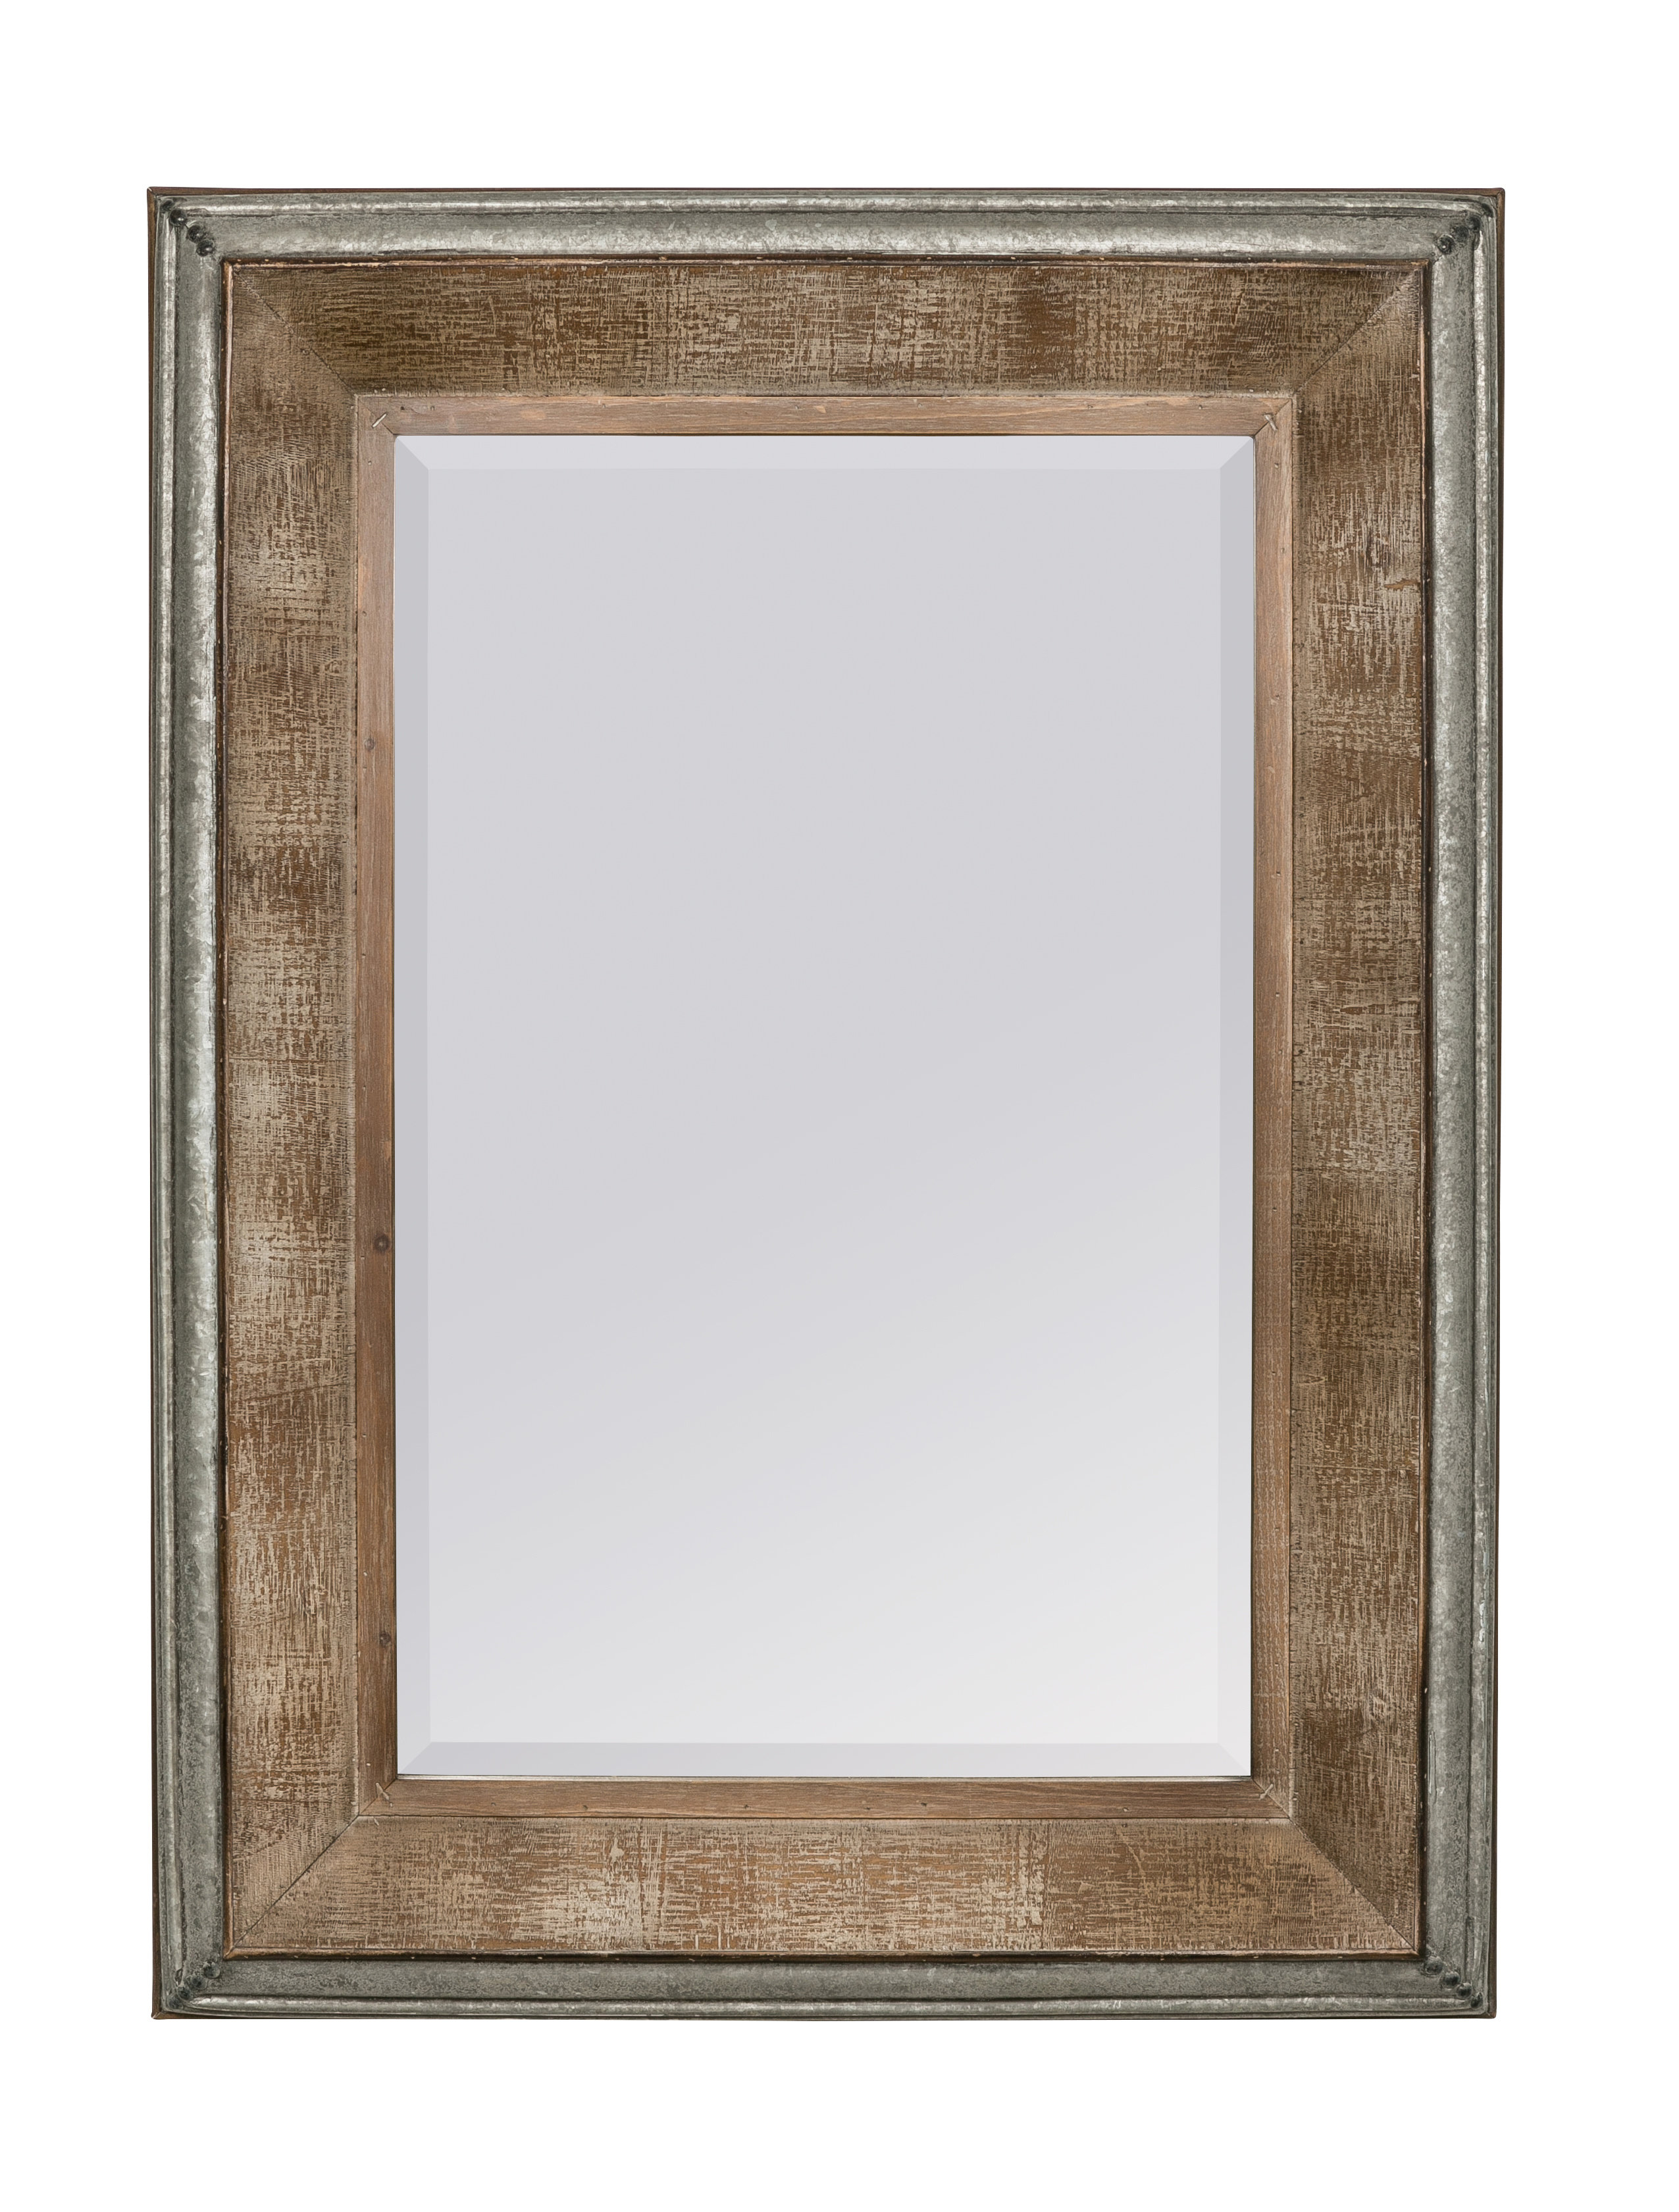 Hatten Modern & Contemporary Beveled Accent Mirror Regarding Modern & Contemporary Beveled Accent Mirrors (View 5 of 20)